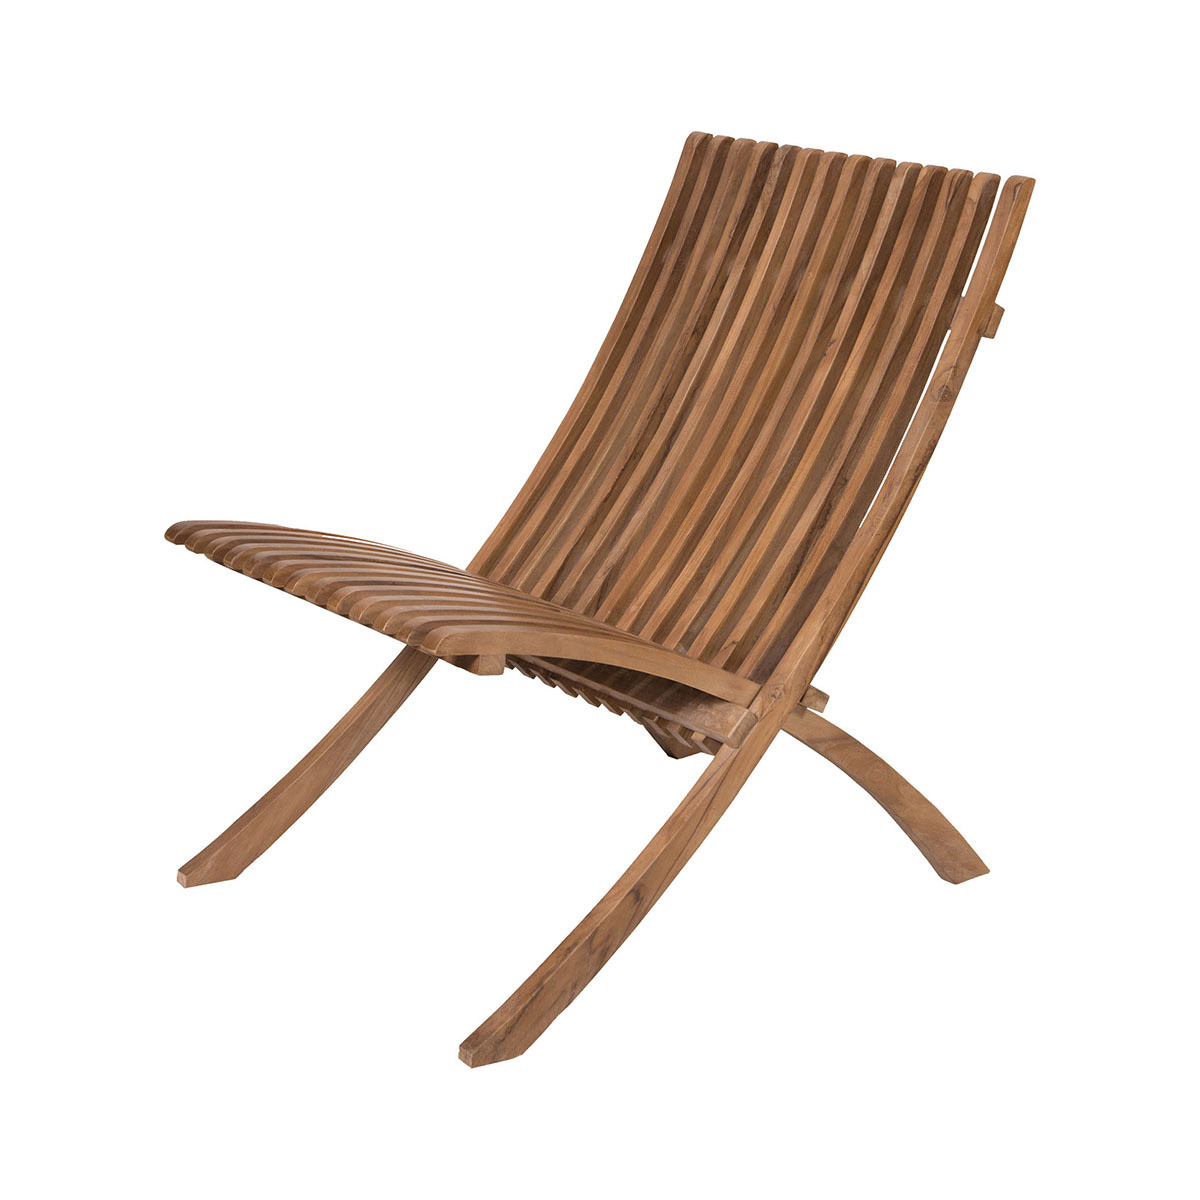 Details About Guildmaster 6917508et Teak Euro Teak Oil Outdoor Seating Throughout Latest 2 Person Light Teak Oil Wood Outdoor Swings (Gallery 5 of 25)